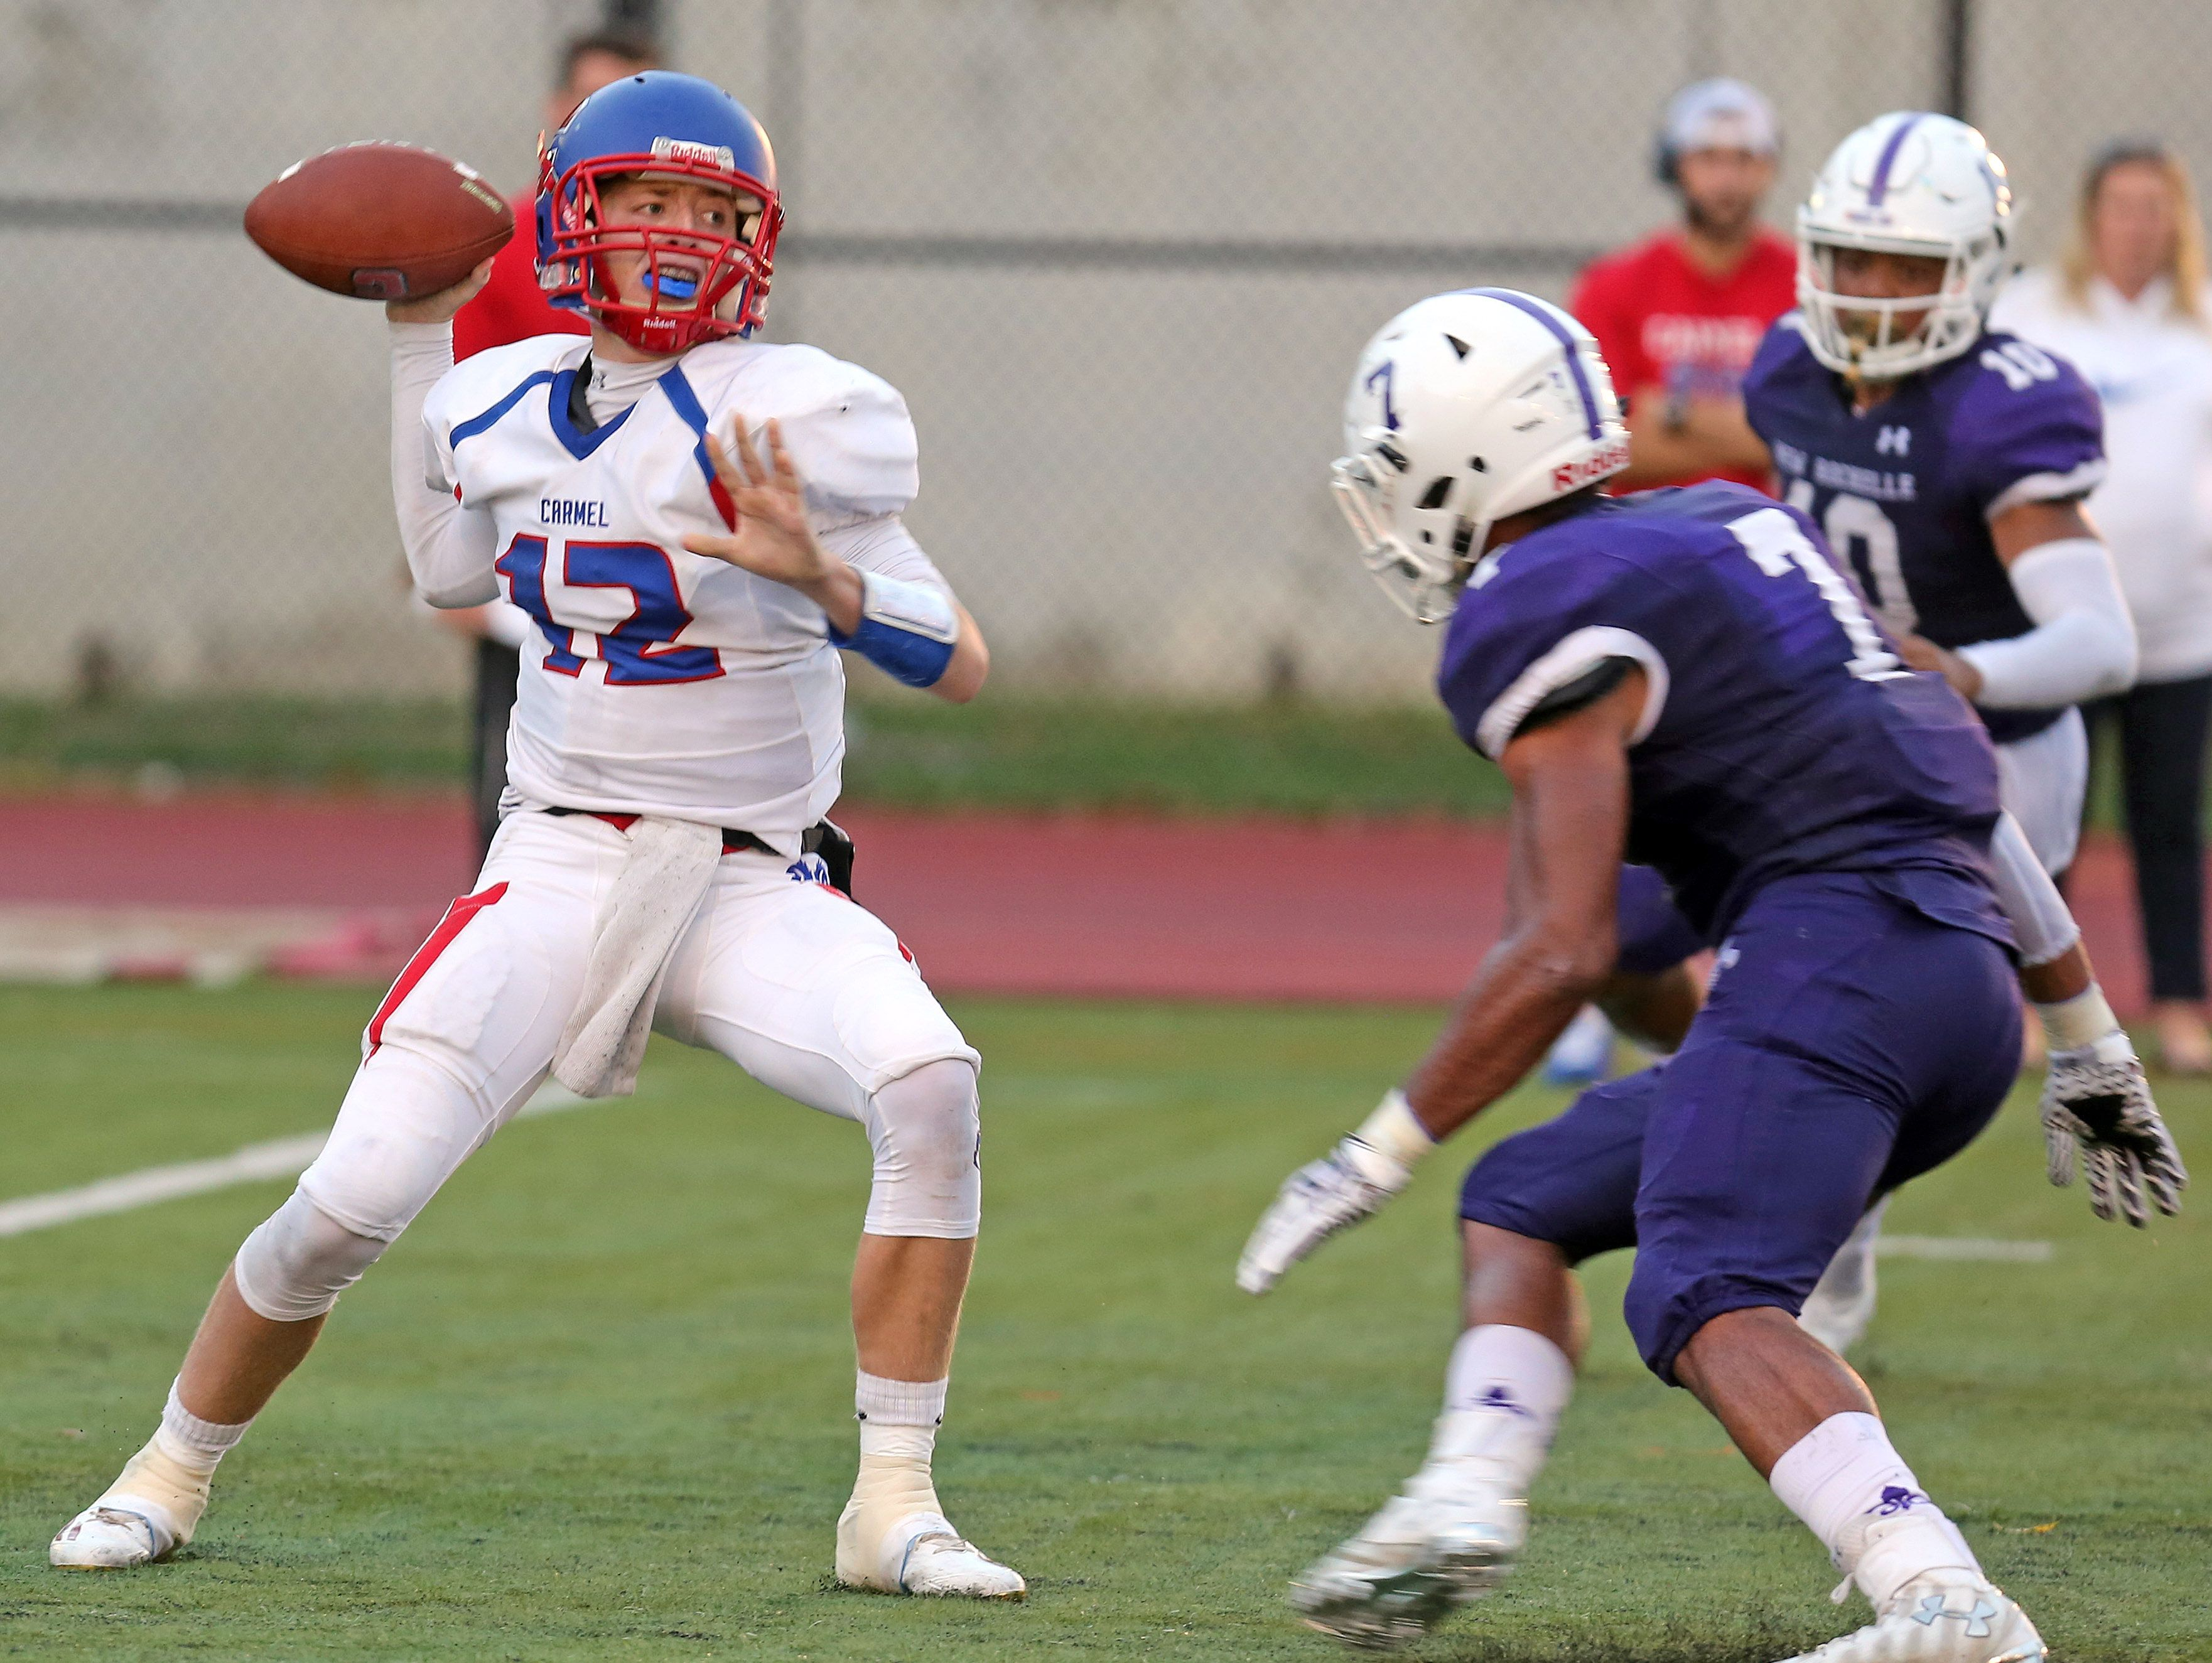 Carmel quarterback Kyle Shilling uncorks a pass during a Class AA quarterfinal at New Rochelle High School Friday night. New Rochelle defeated Carmel 6-0.